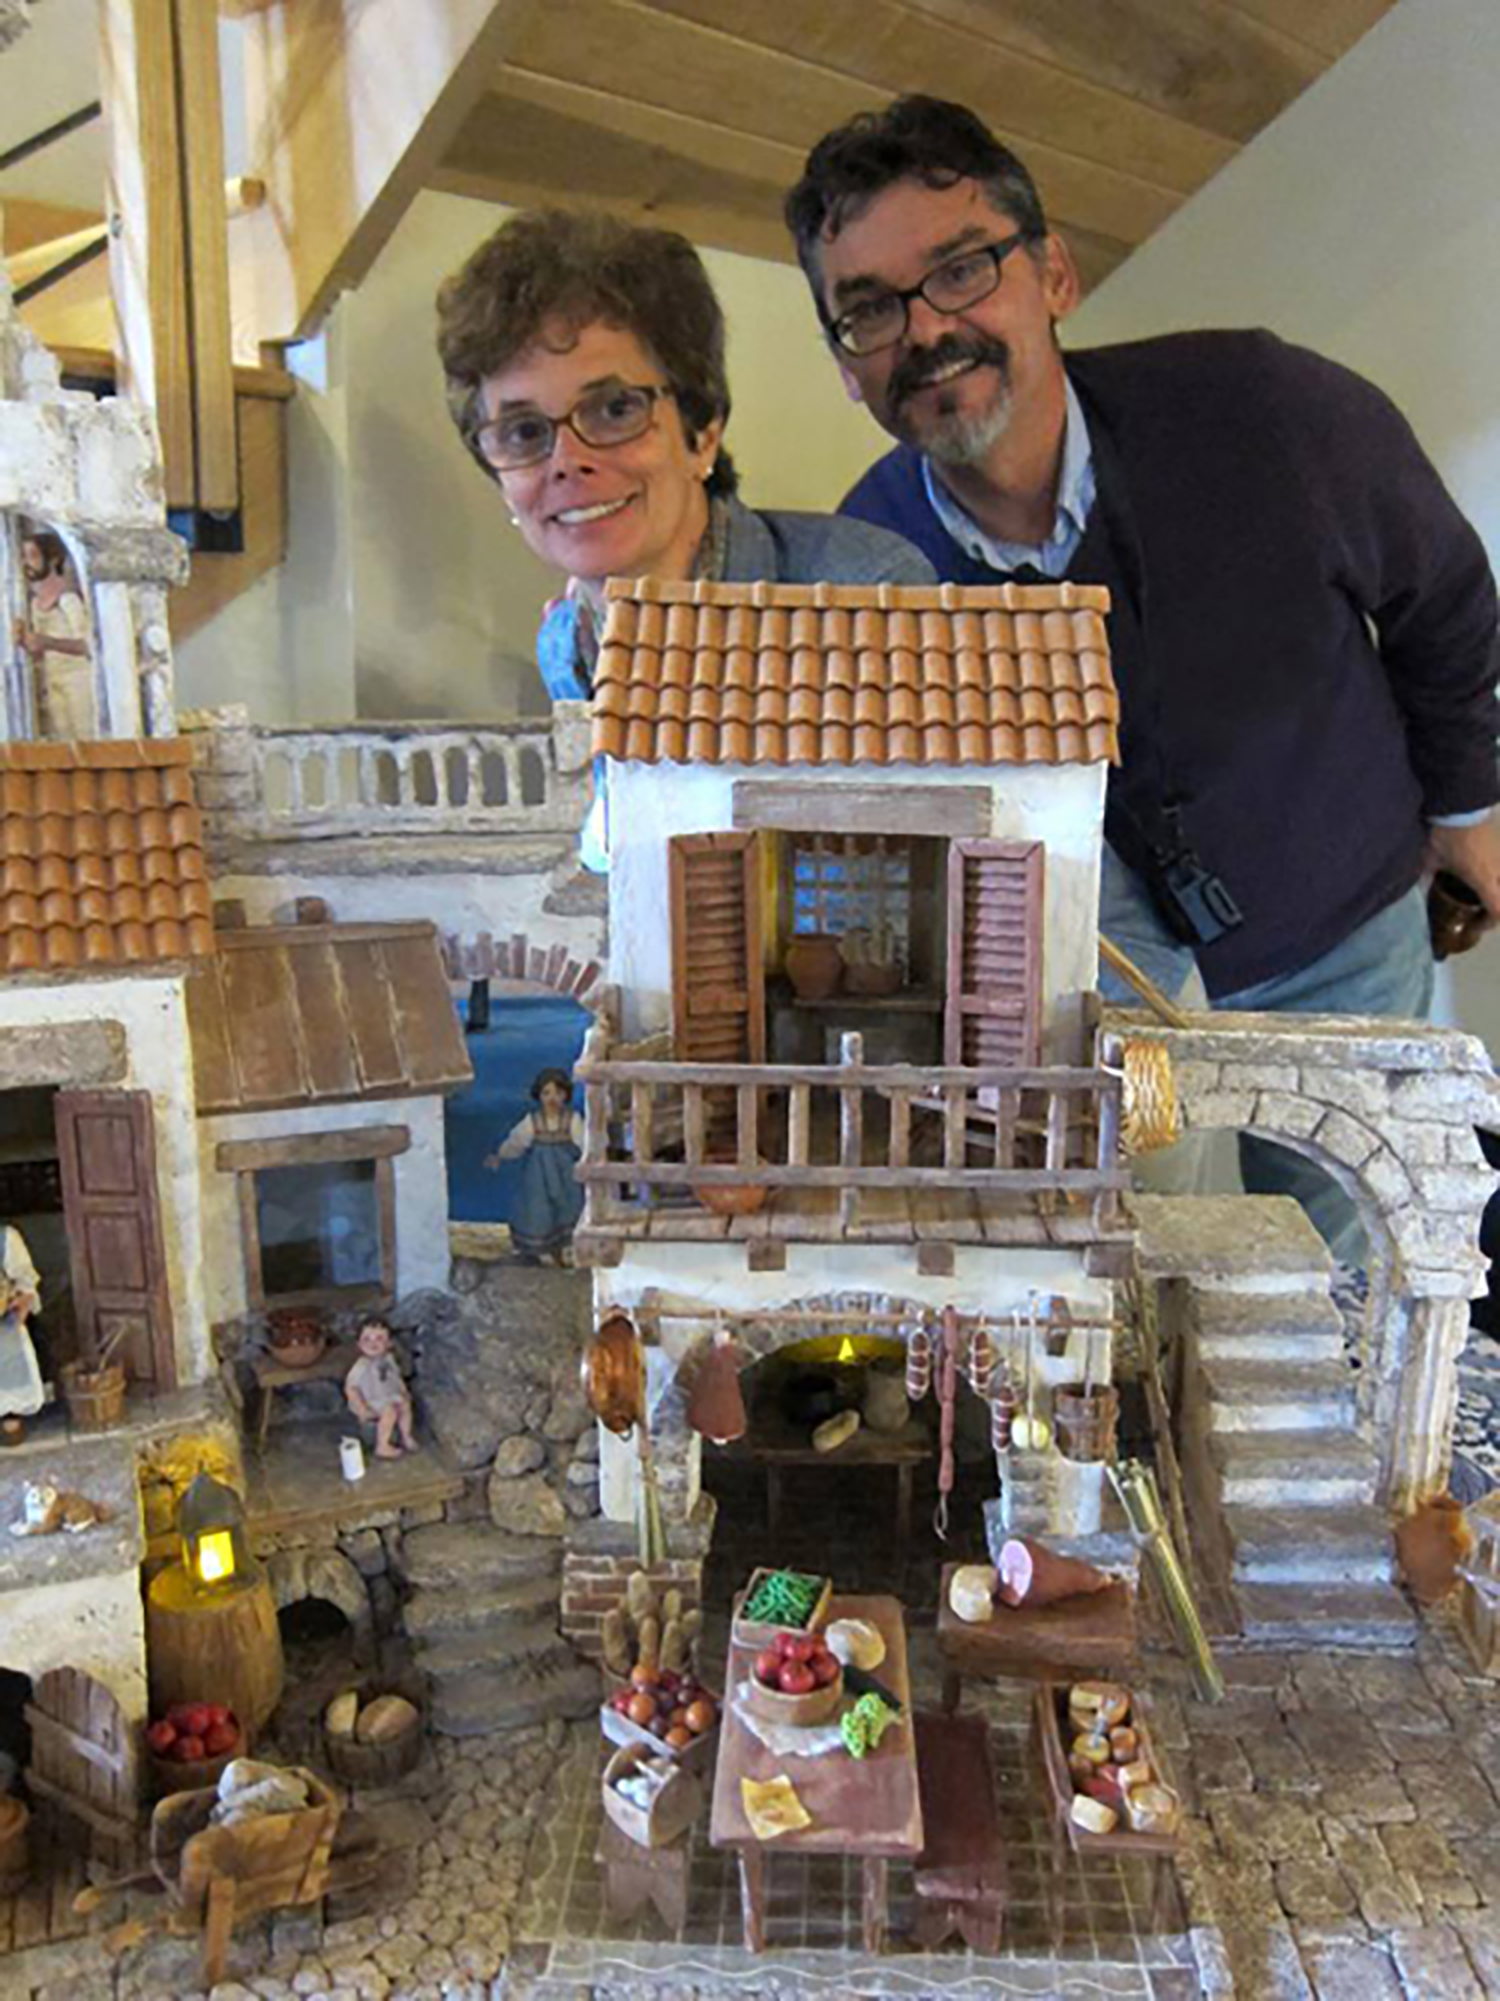 Figure 1: Karen Loccisano and R. Michael Palan with their Presepio during its construction.